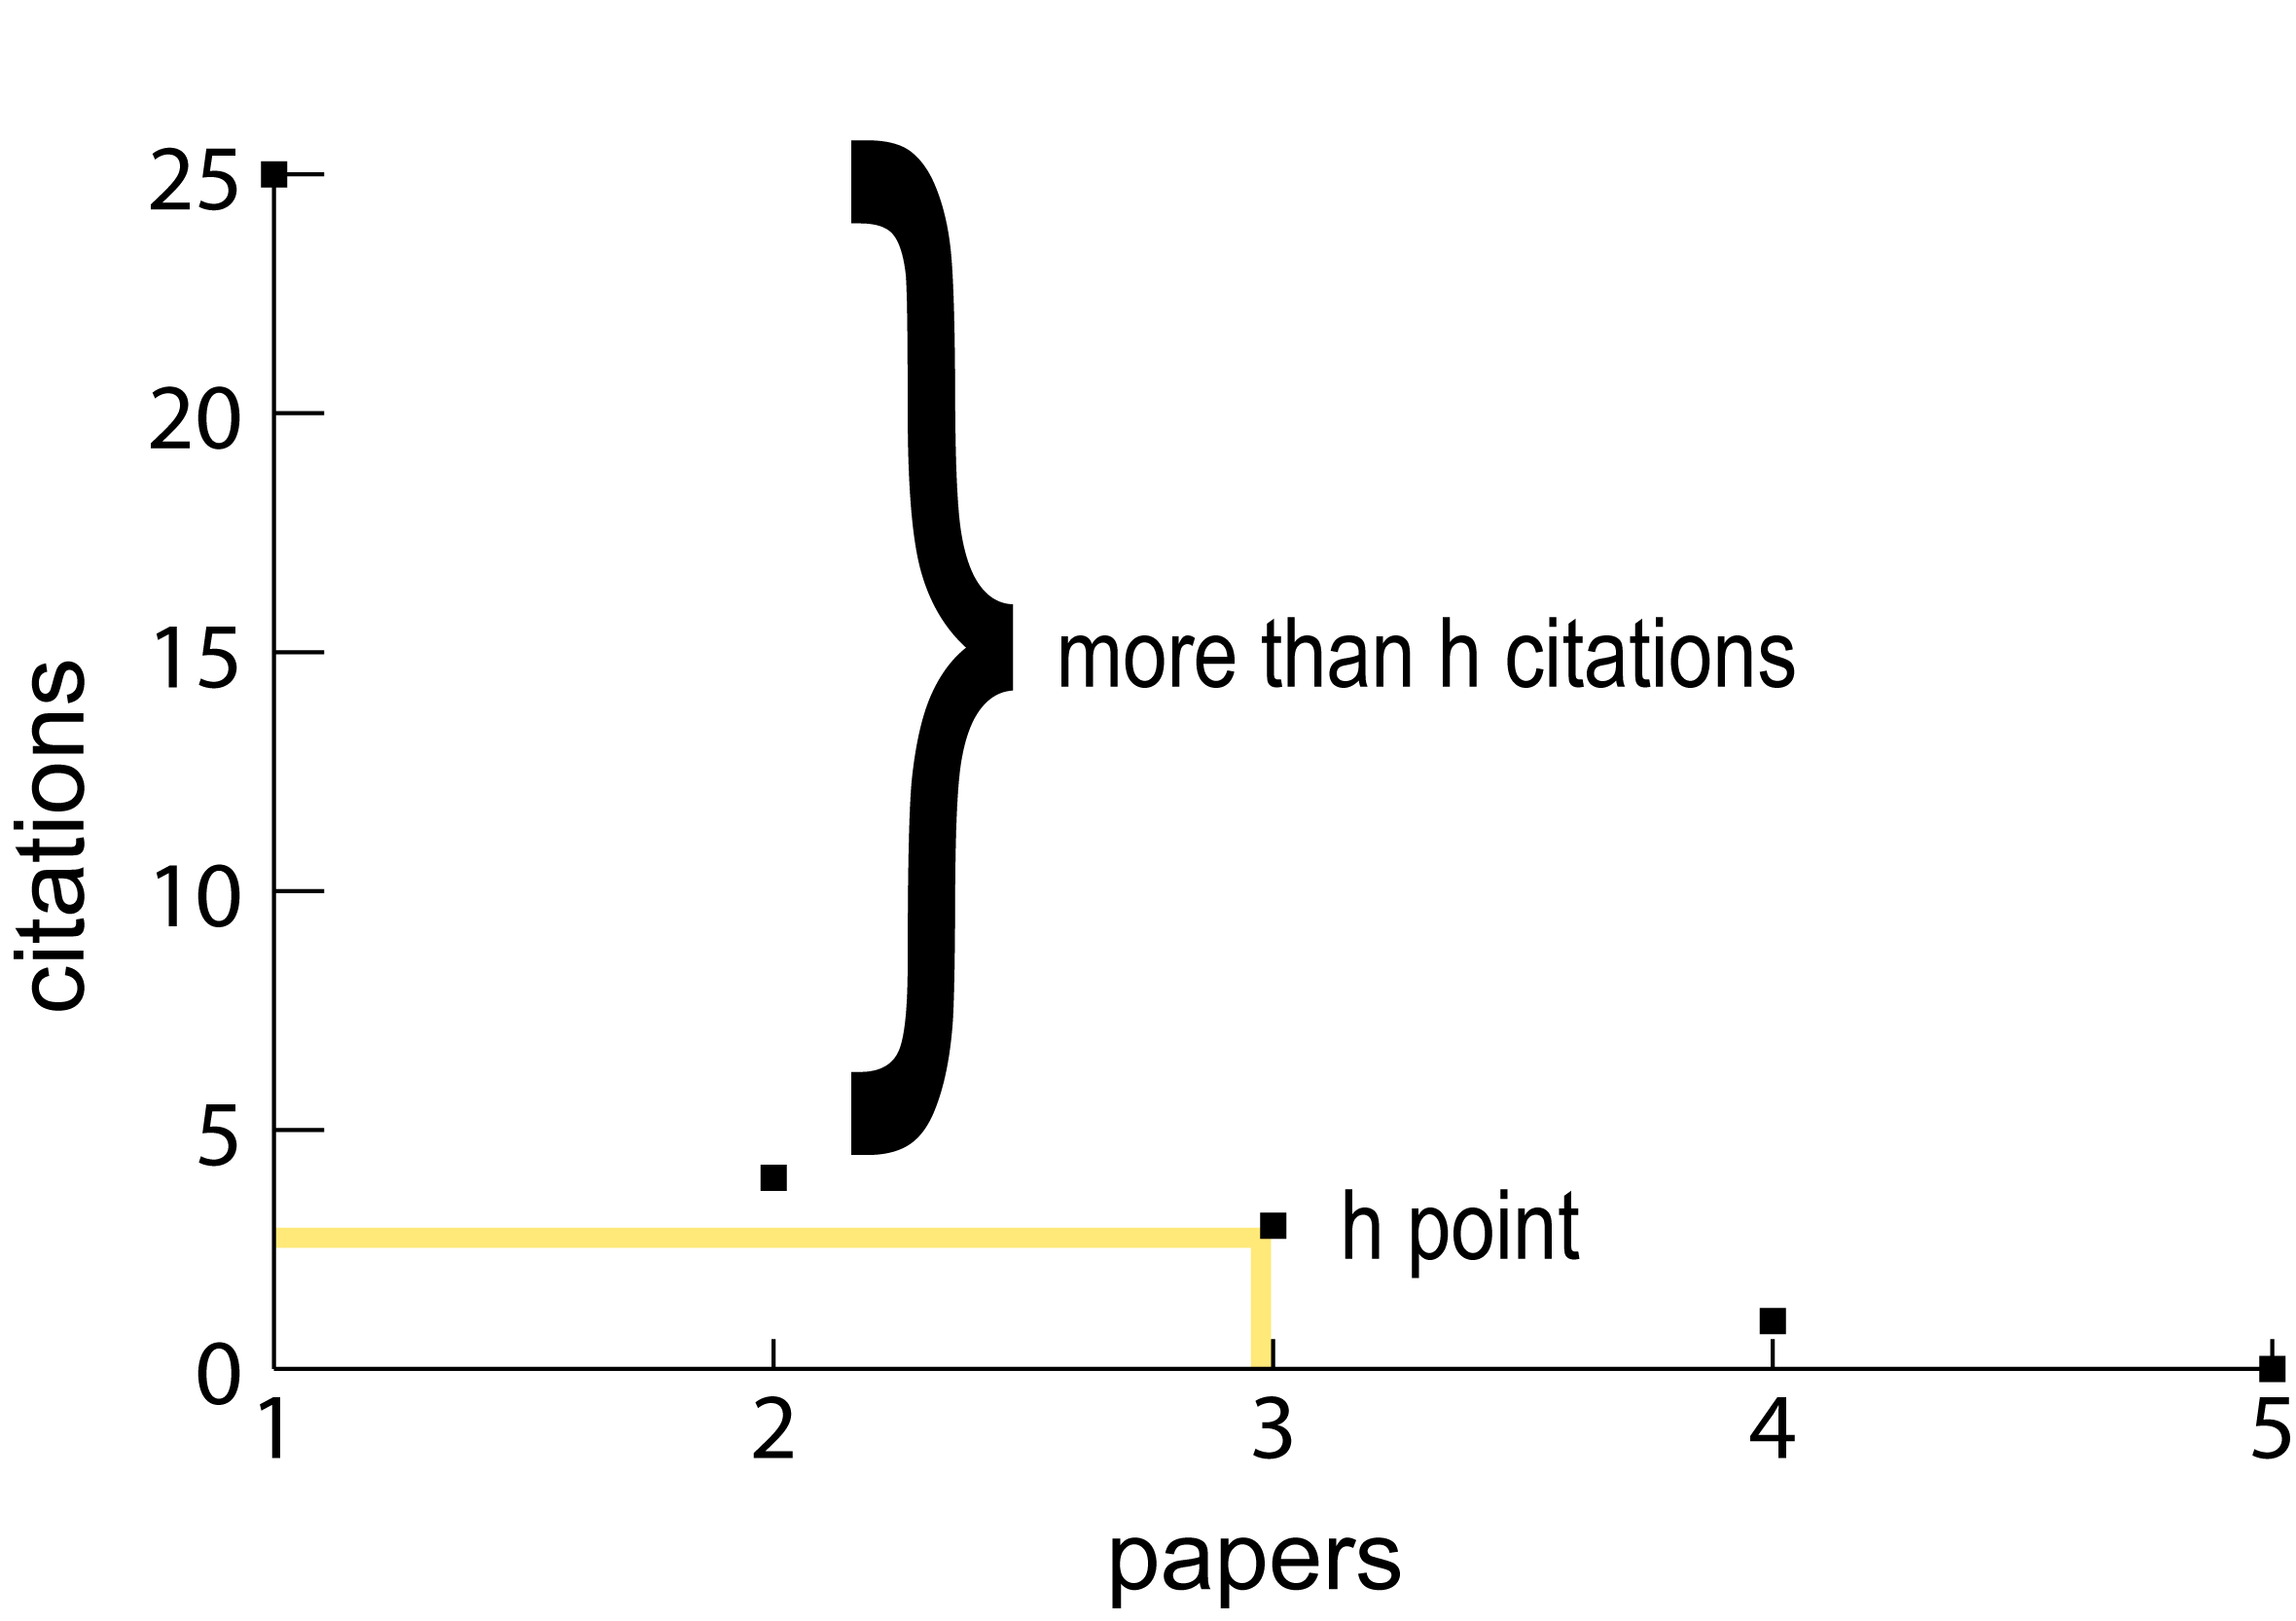 Figure 2. Author B h point Scatterplot